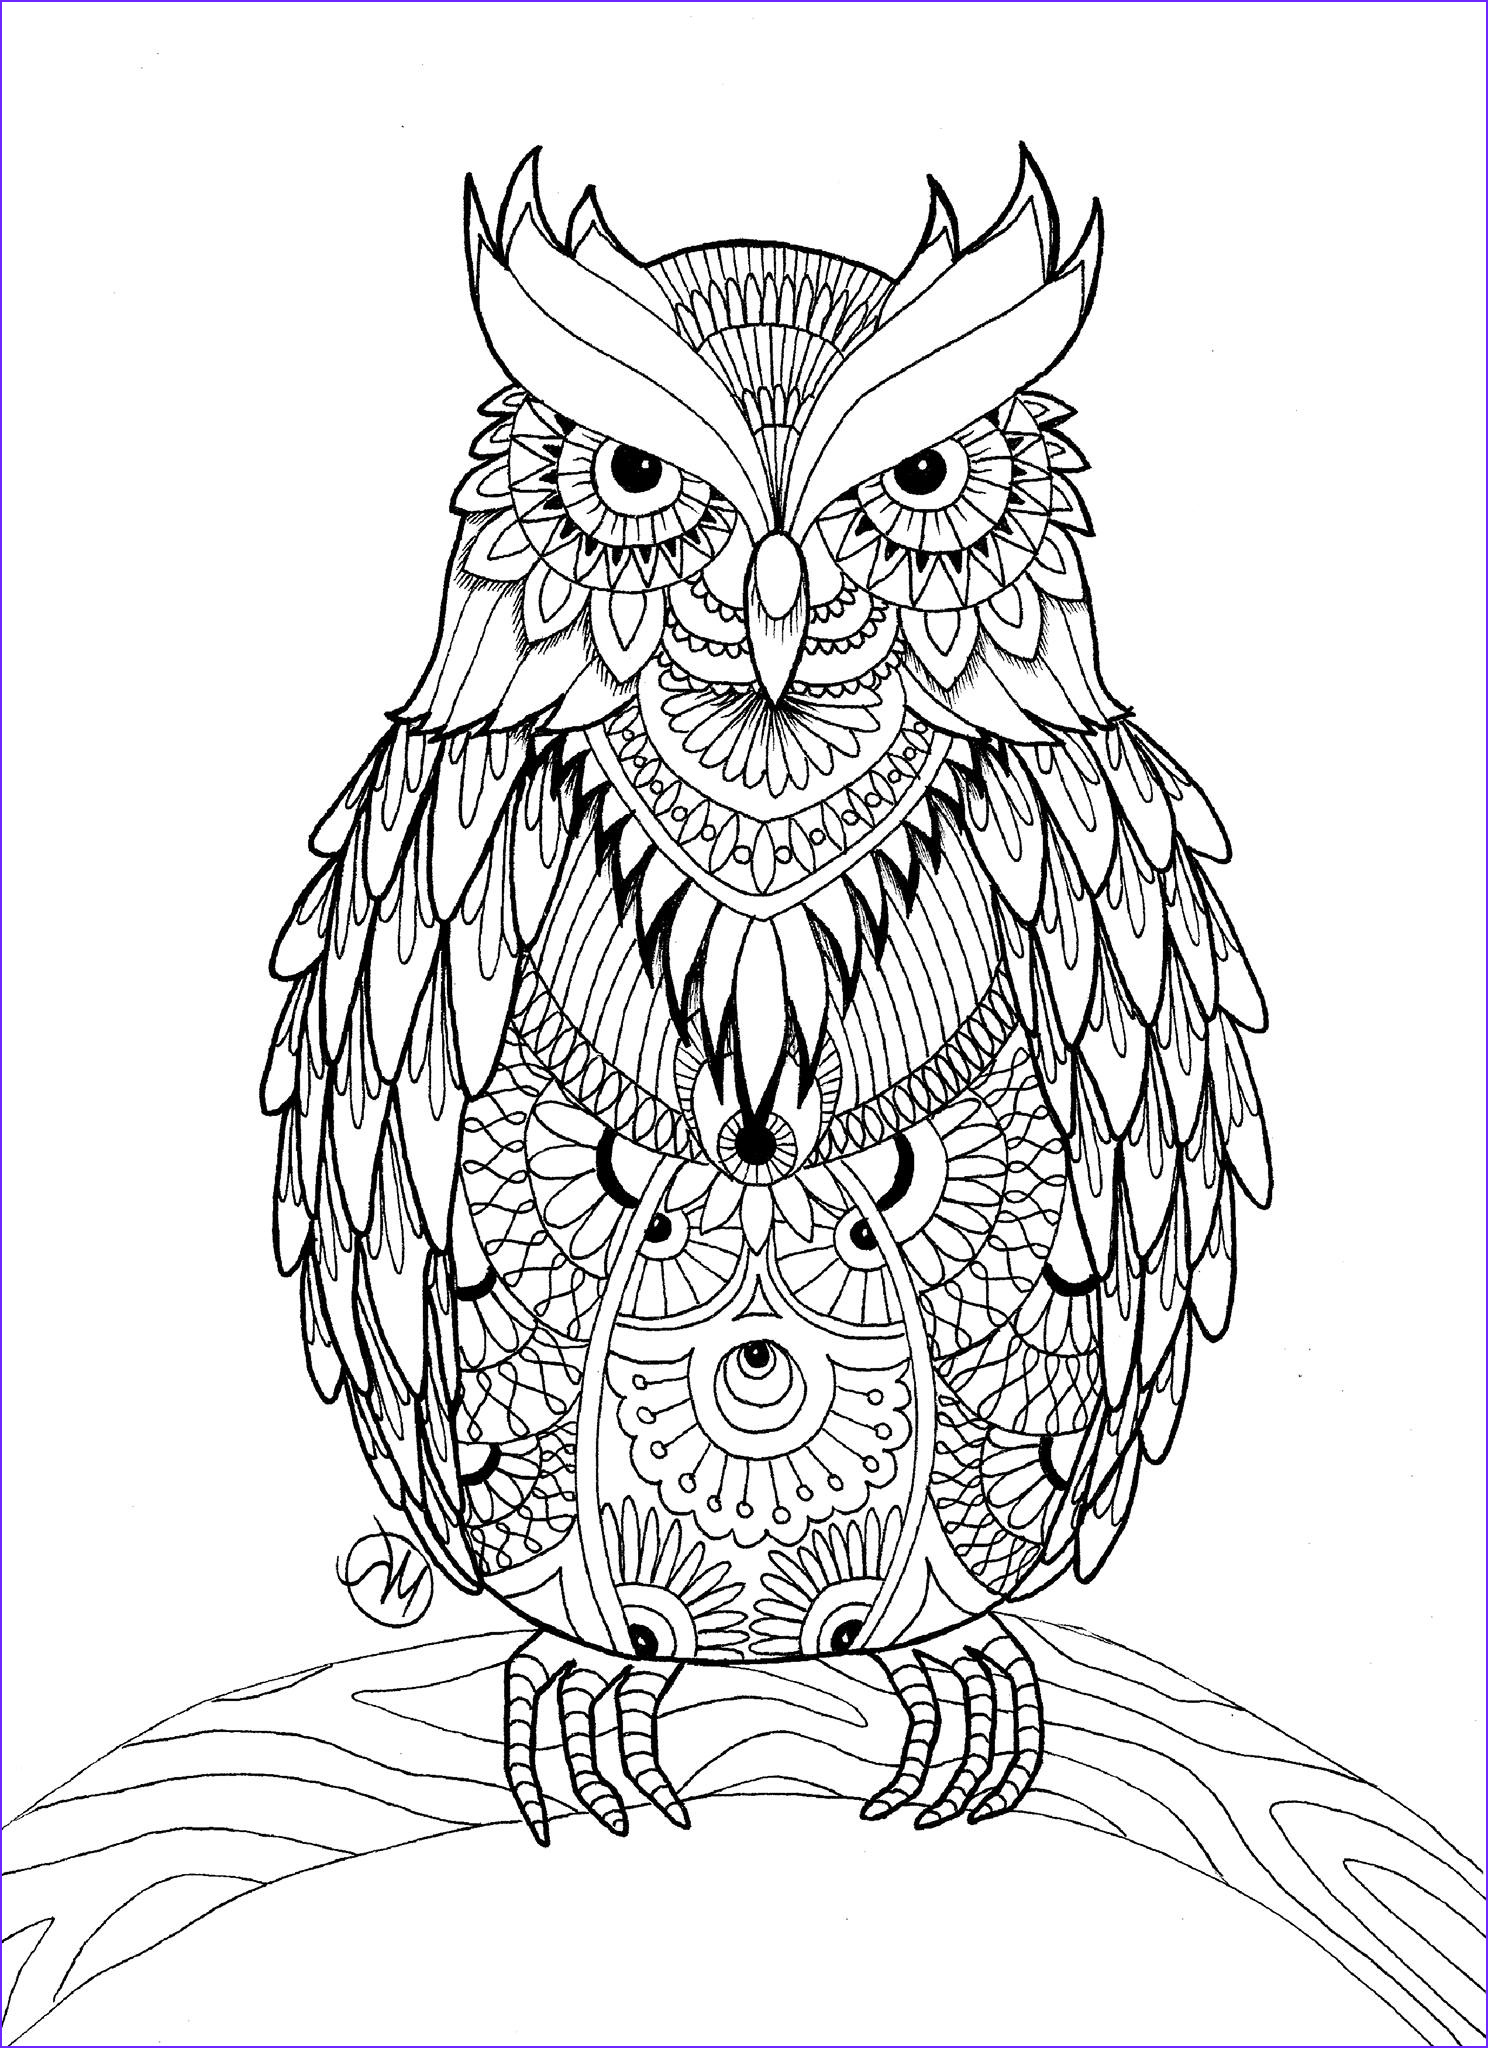 Owl Coloring Inspirational Image Owl Coloring Pages for Adults Free Detailed Owl Coloring